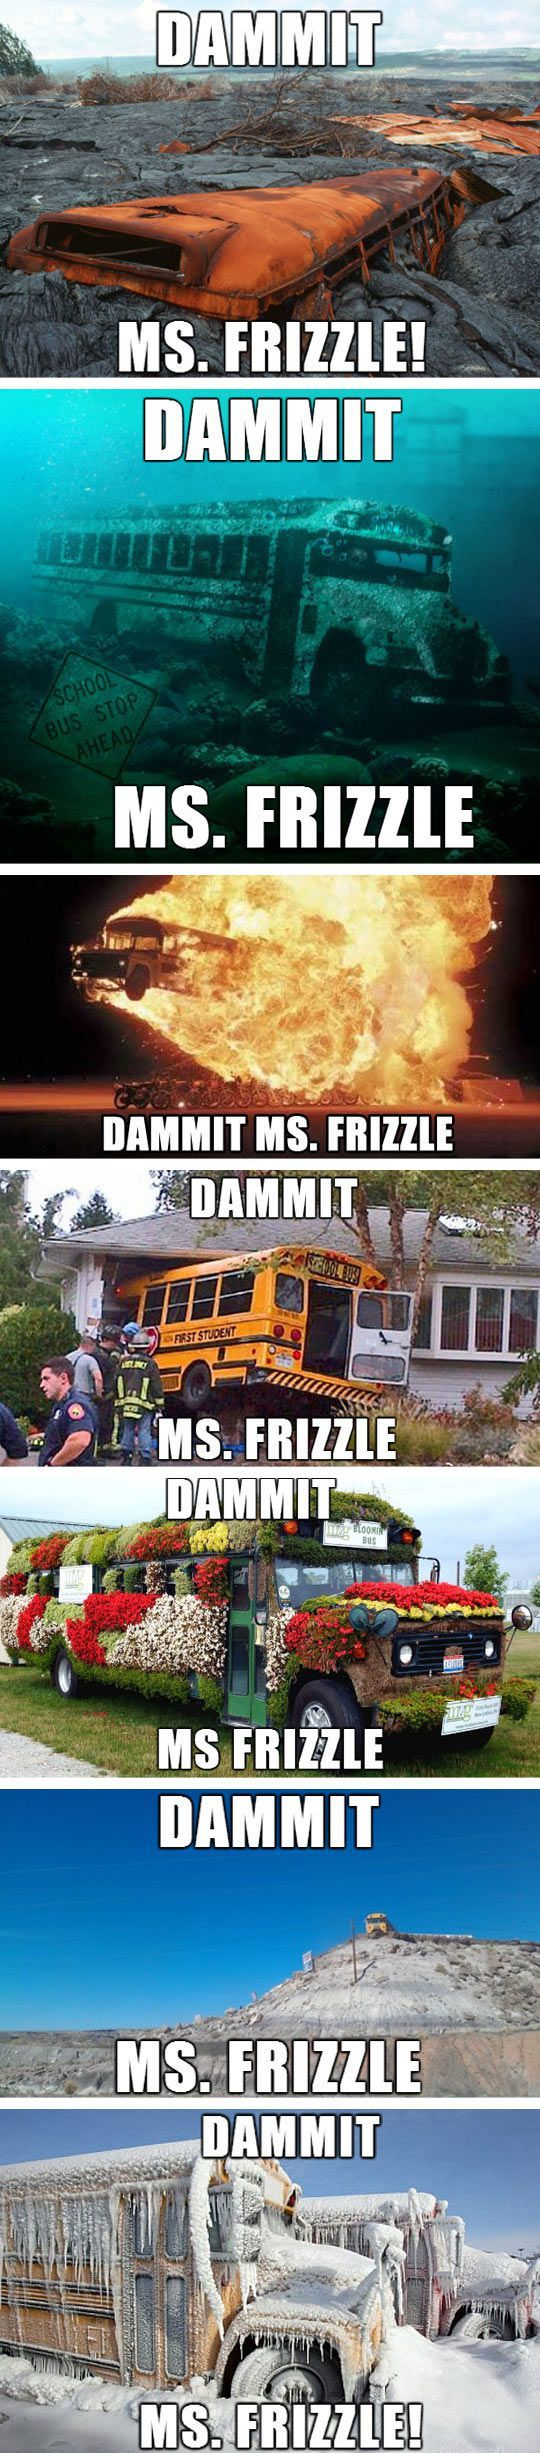 Ms. Frizzle and her Magic School Bus were one of the staples of my childhood, so this is hilarious.